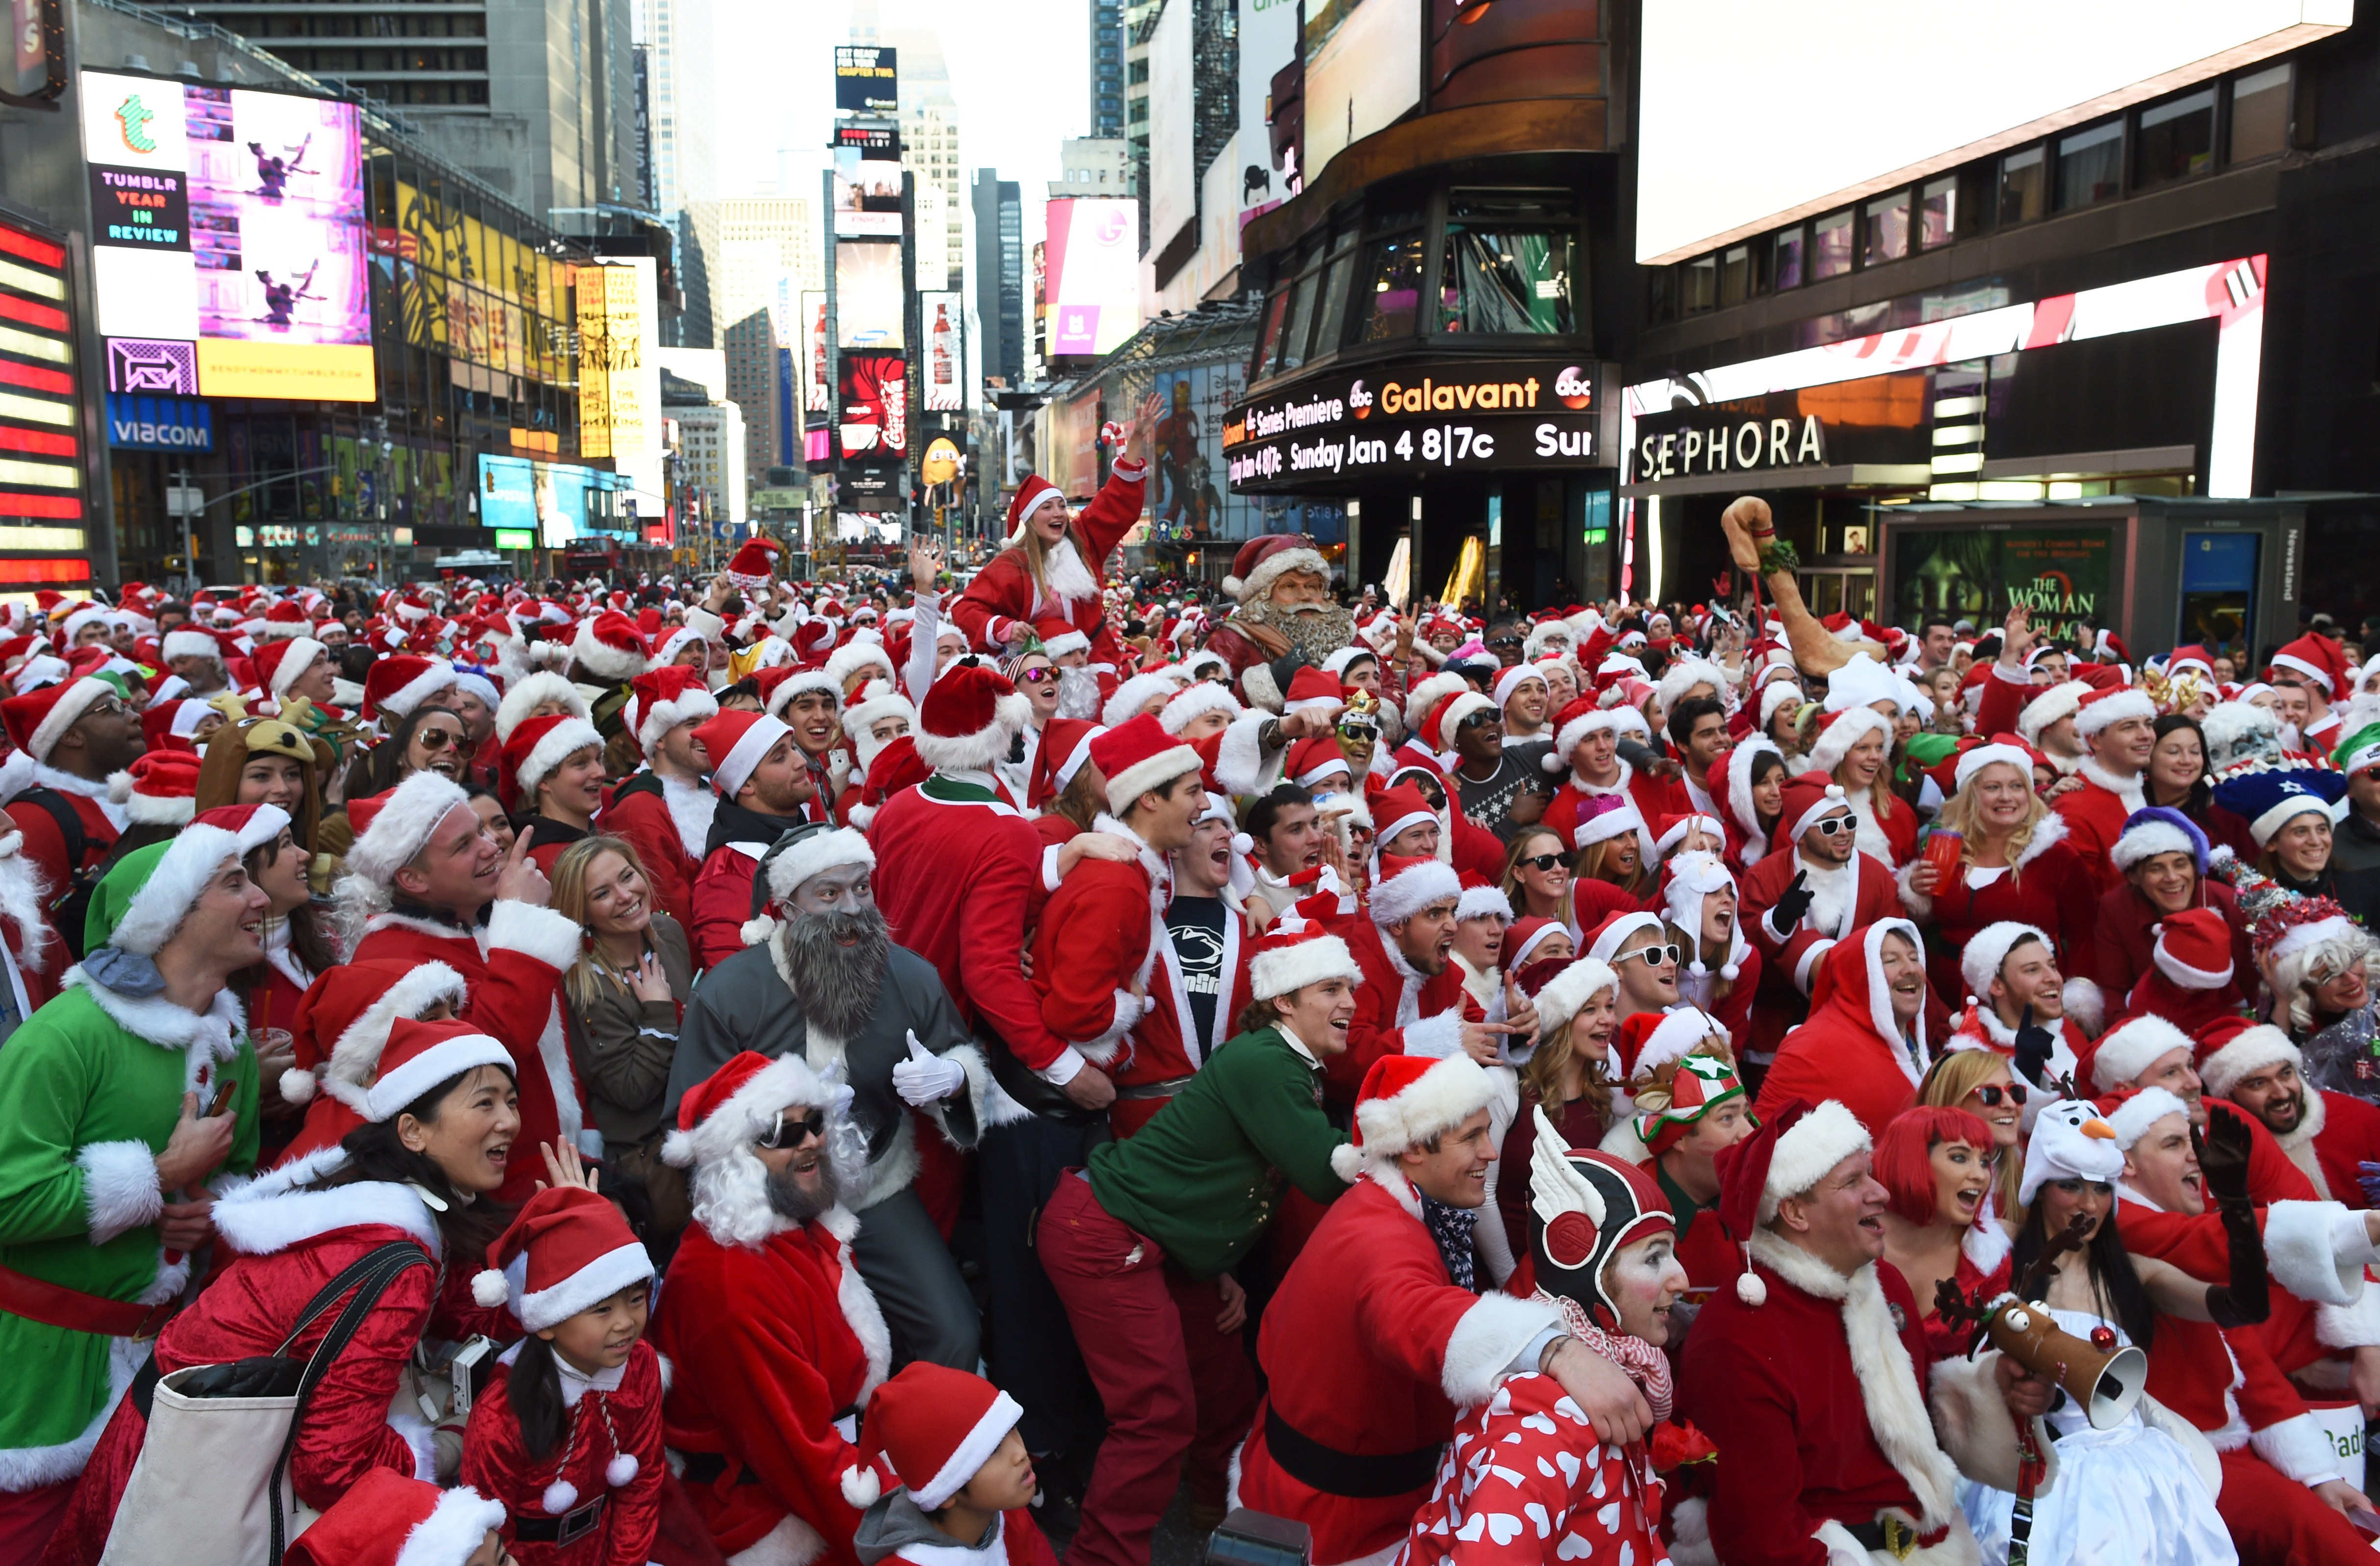 People dressed as Santa Claus and Mrs. Claus celebrate in Times Square as they gather for the annual Santacon festivities on Dec. 13, 2014 in New York.